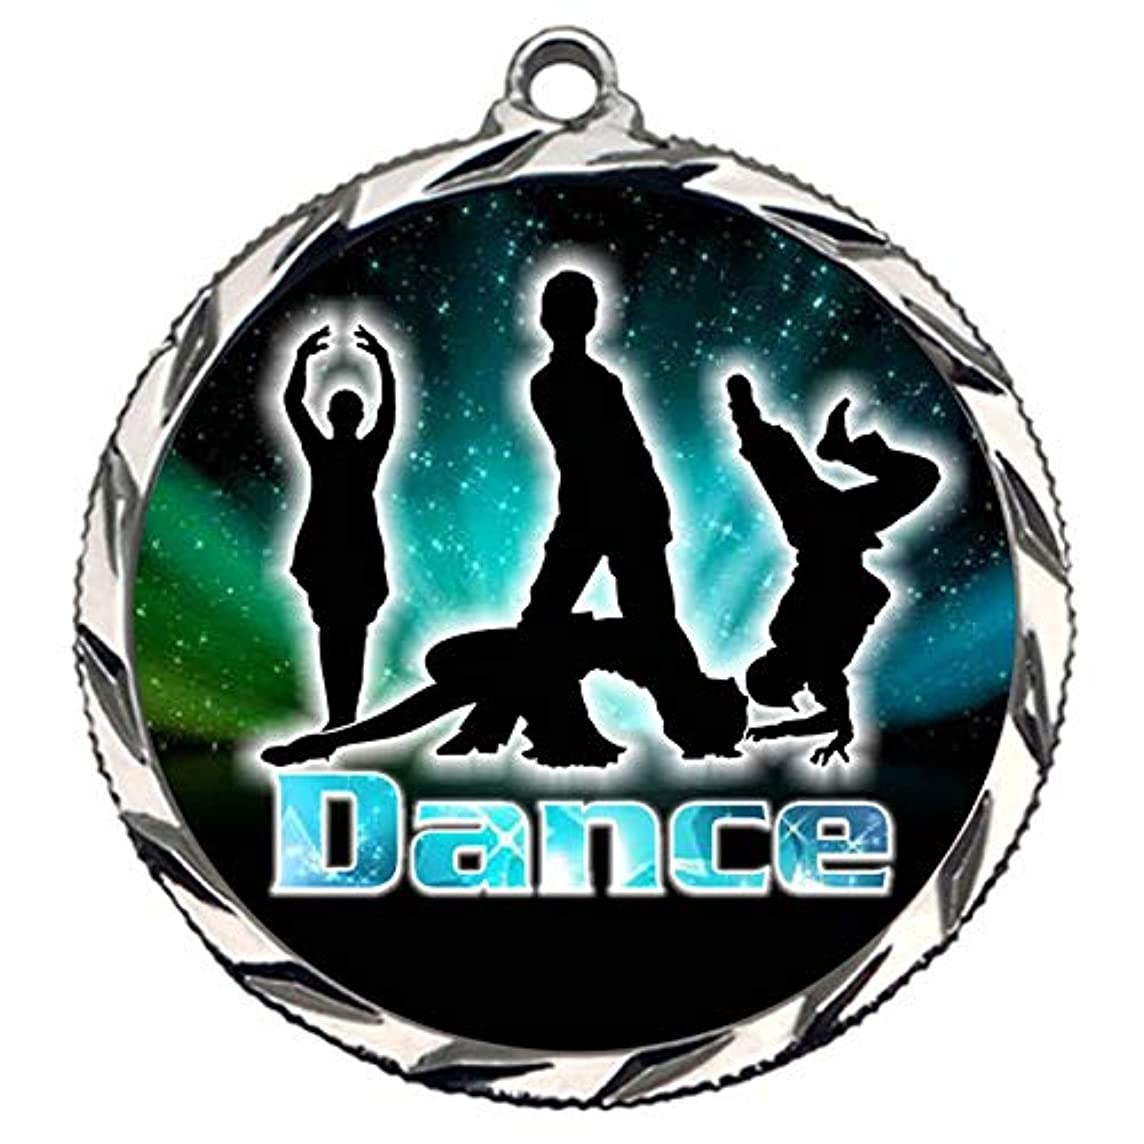 Express Medals Silver 2nd Place Modern Dance Medal with Neck Ribbon Award 022